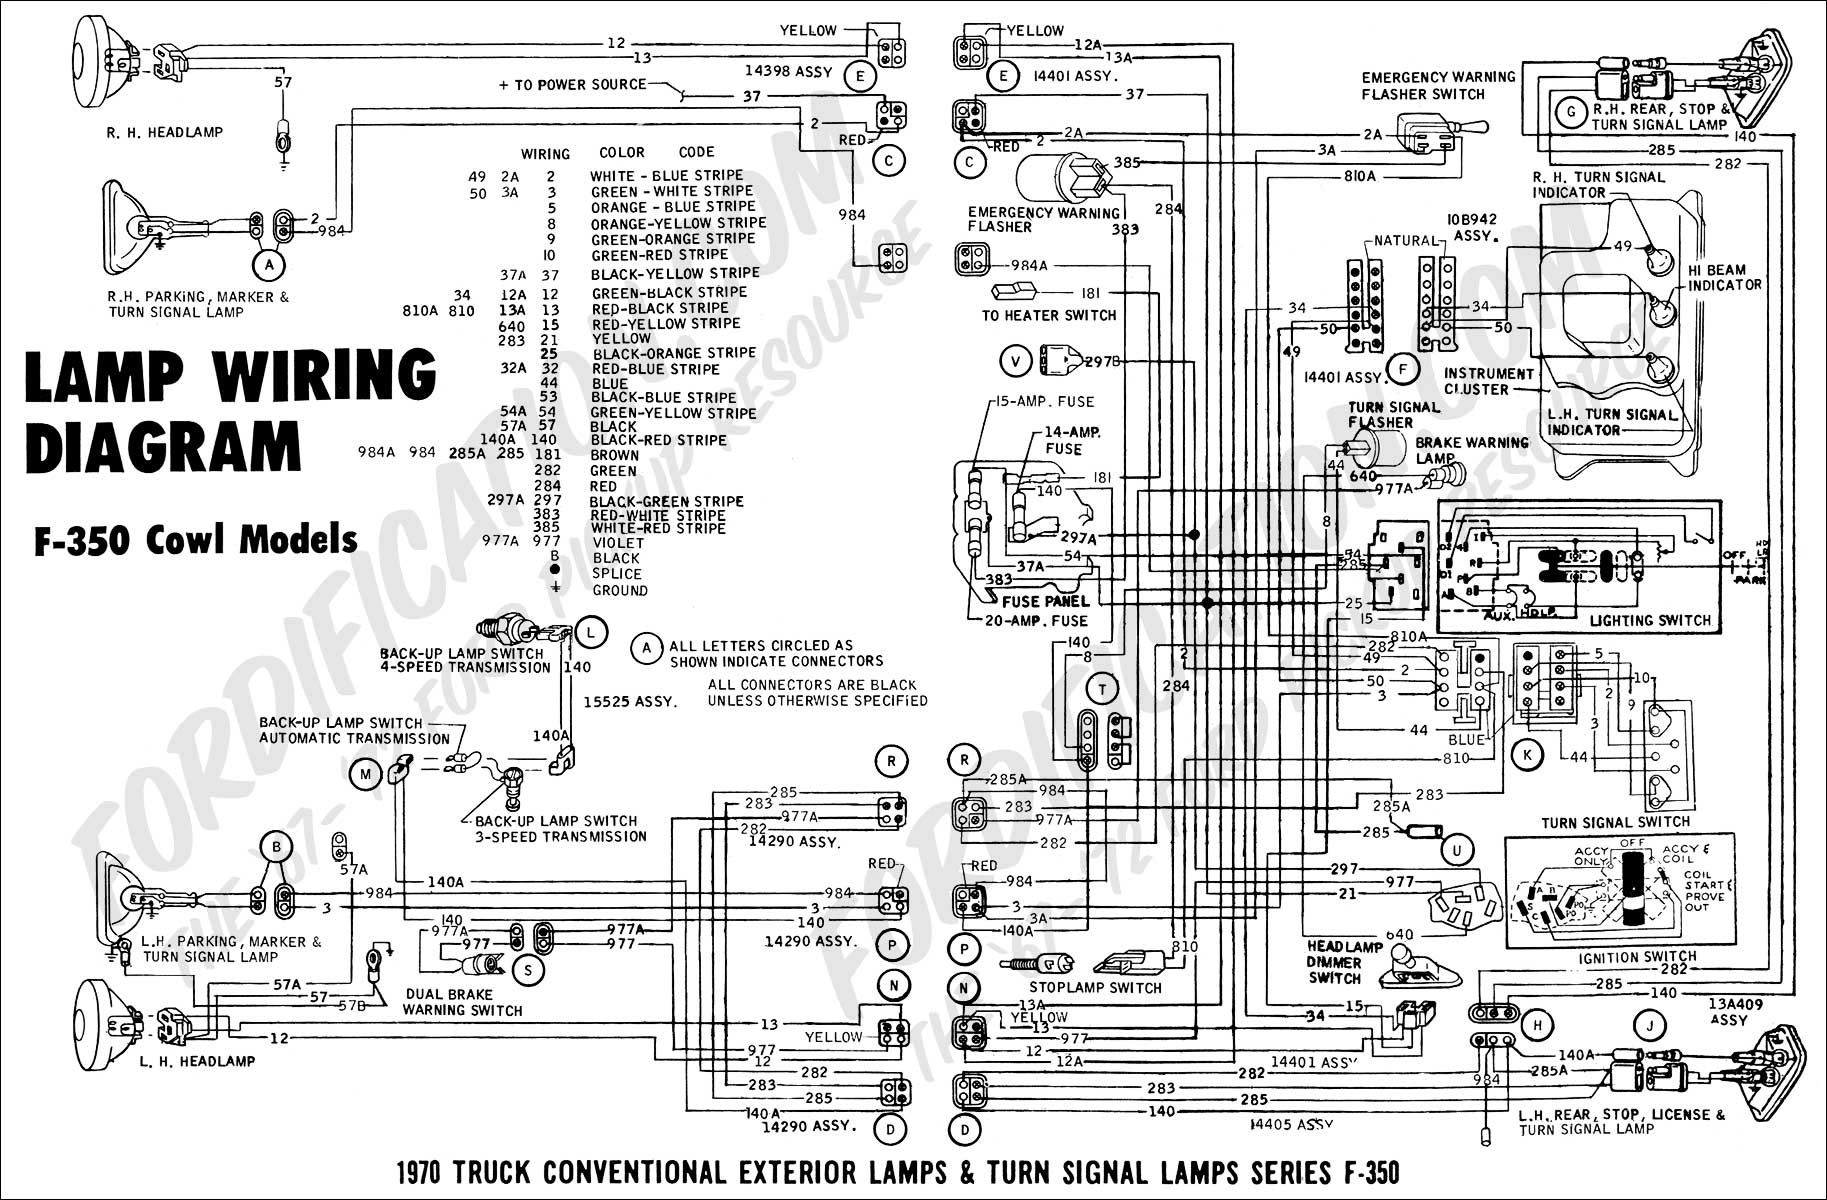 F350 Wiring Diagram - Wiring Diagrams Hubs - Trailer Wiring Diagram For Ford F350